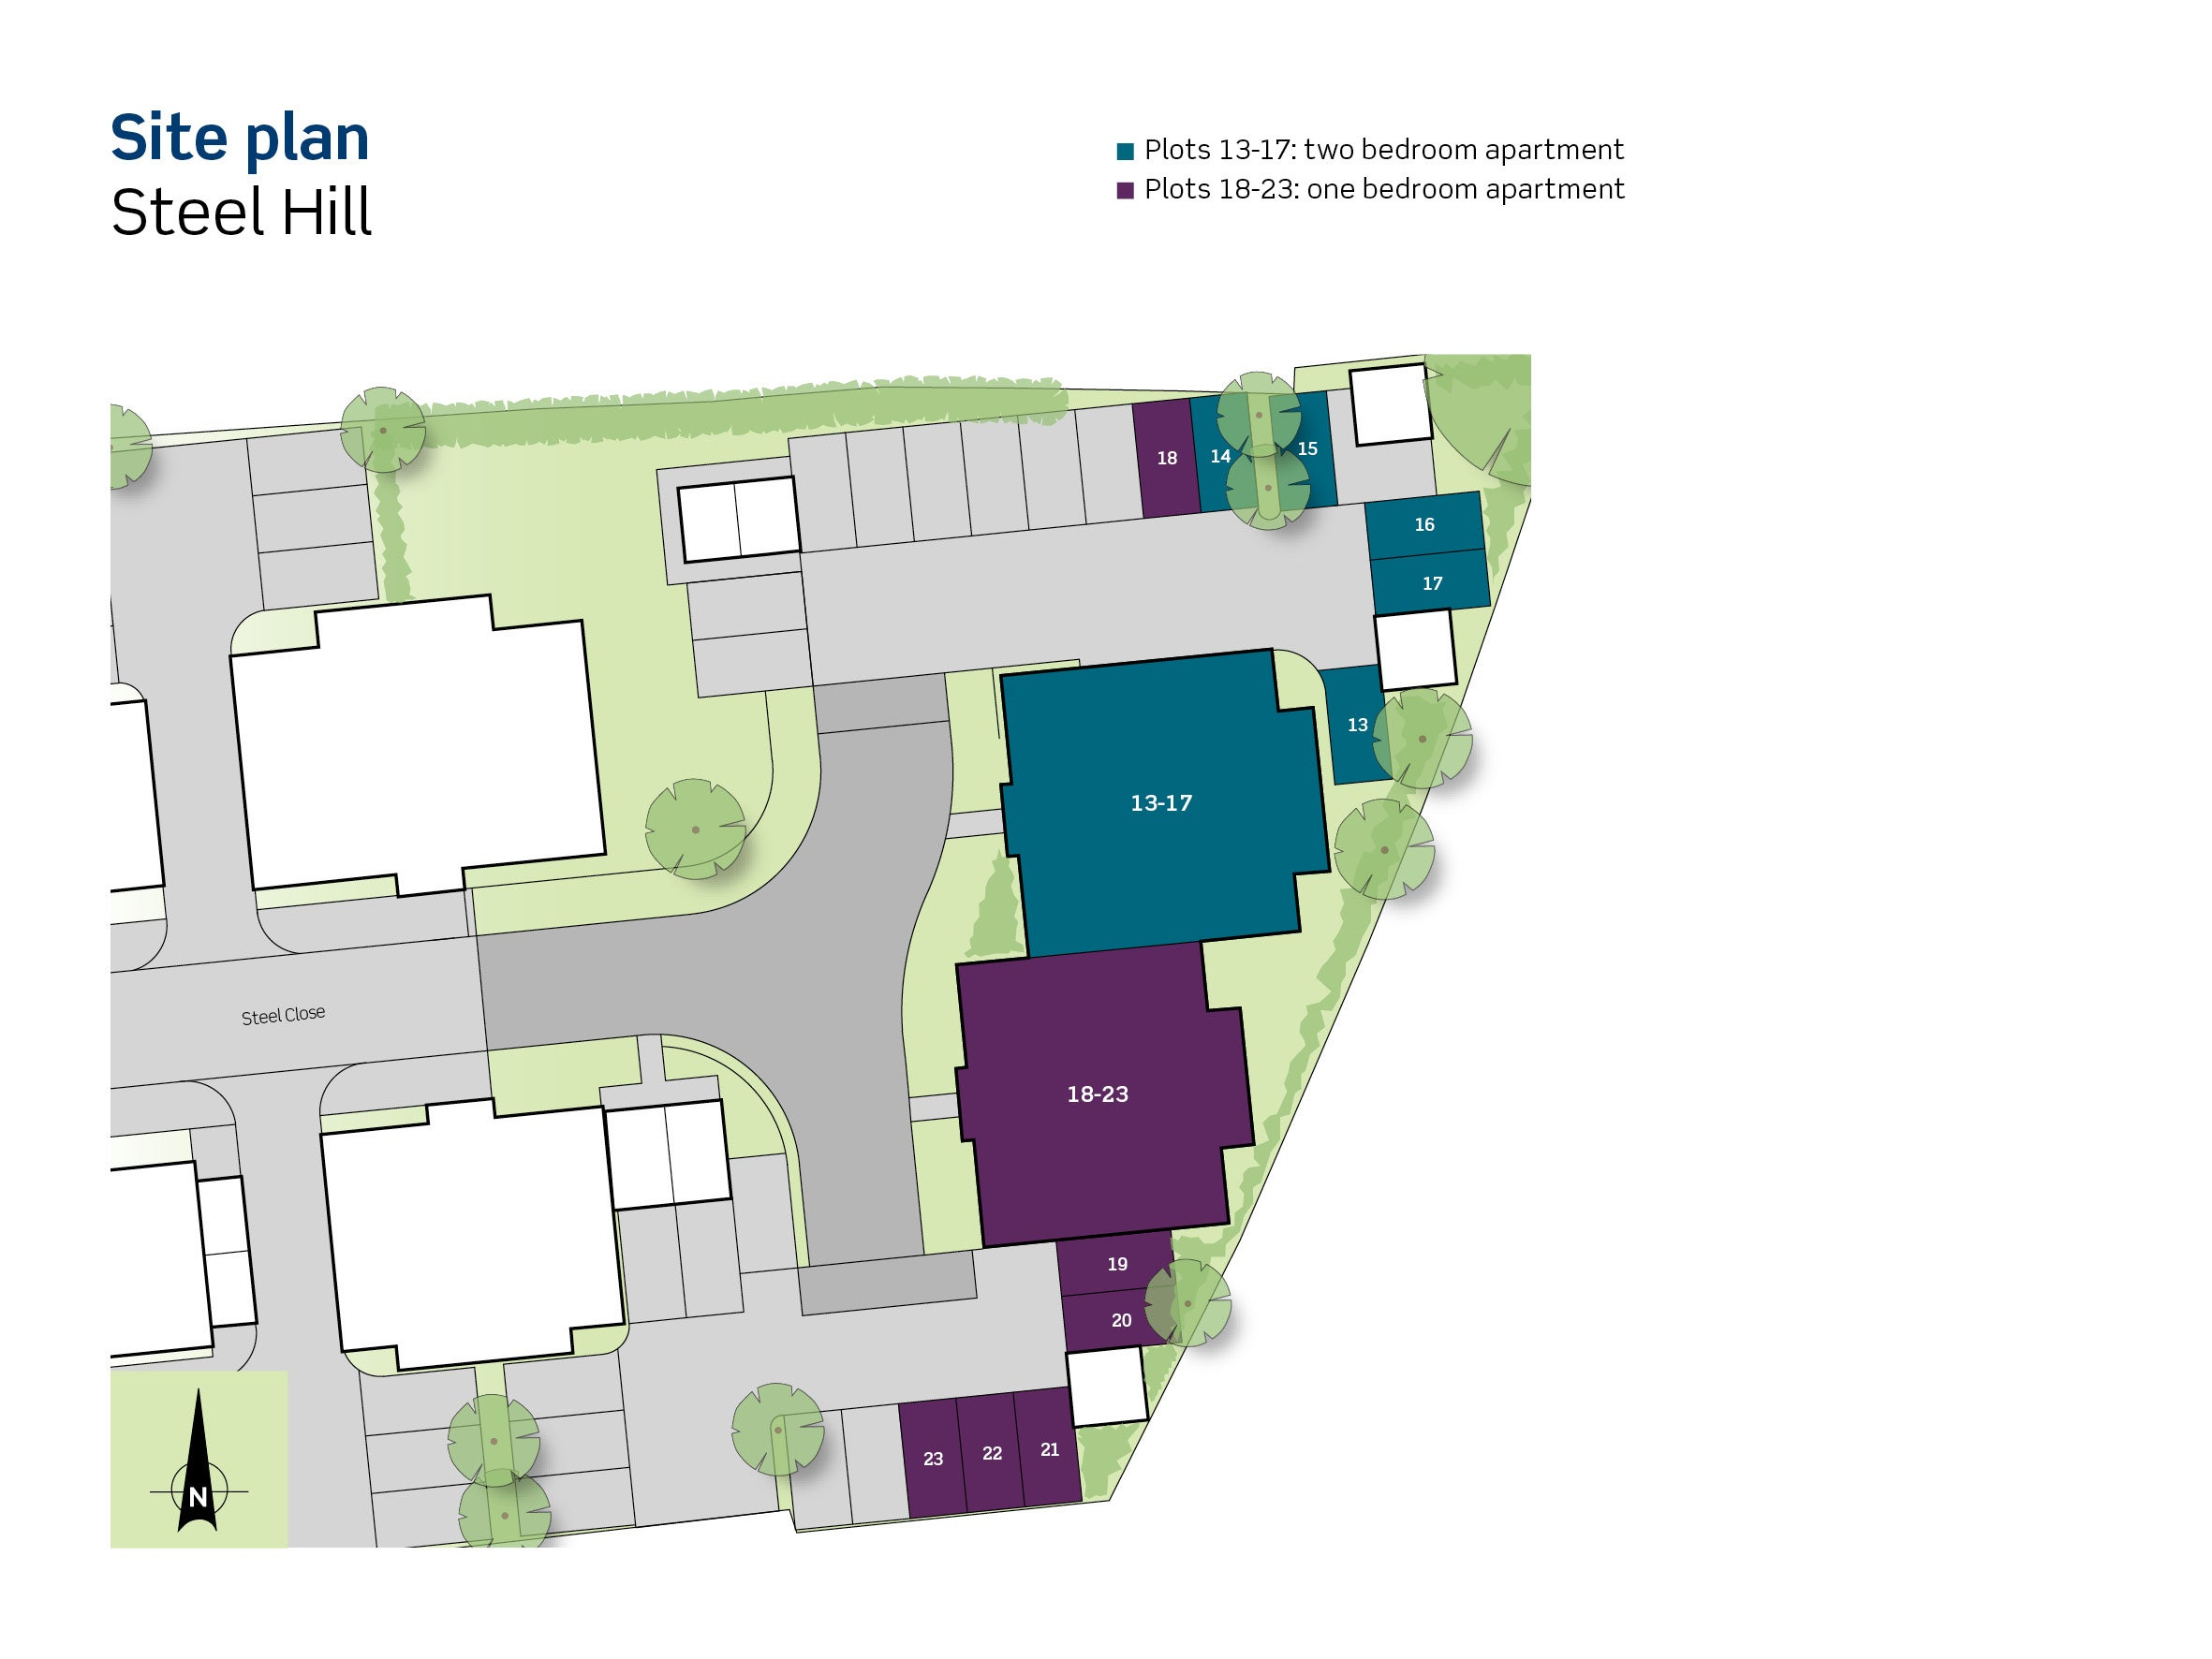 Site plan for Steel Hill apartments